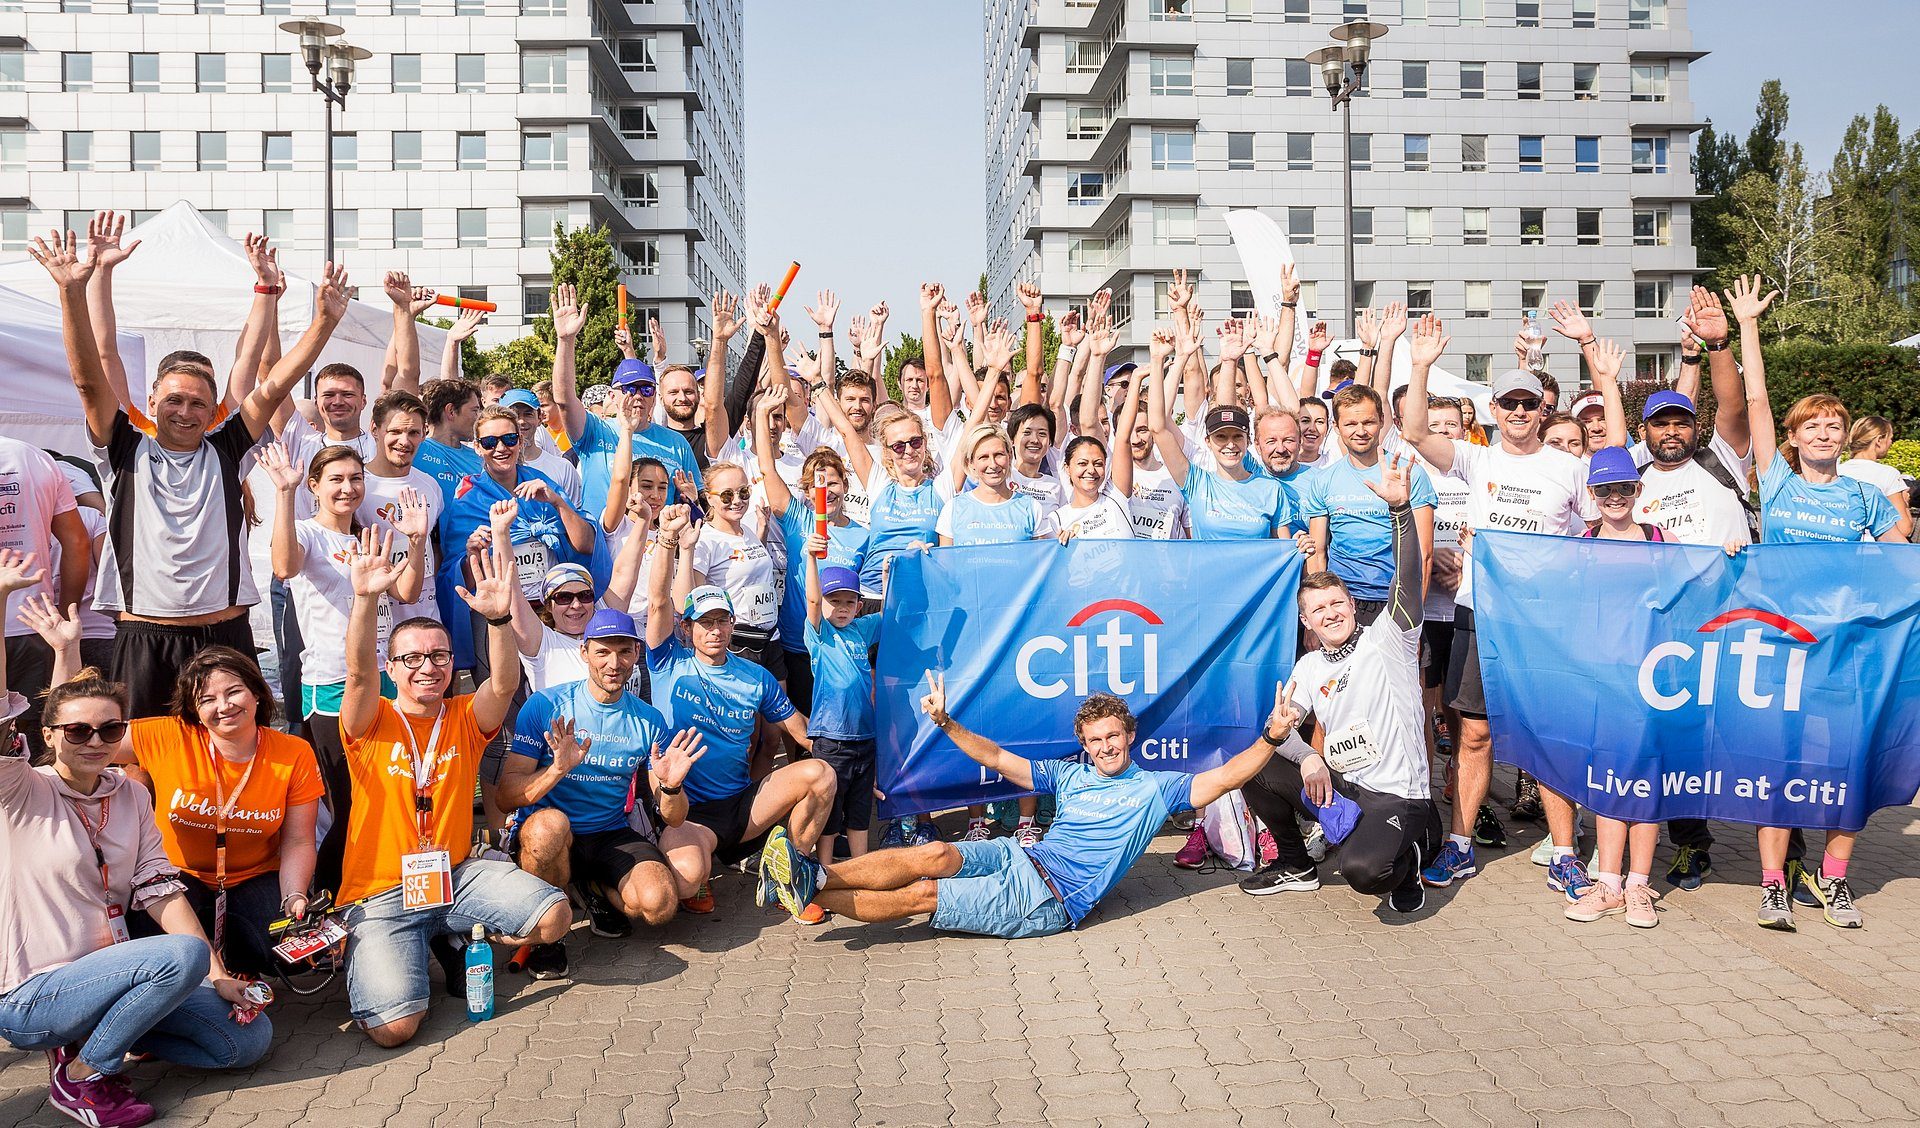 #CitiVolunteers biegną w Warszawa Business Run